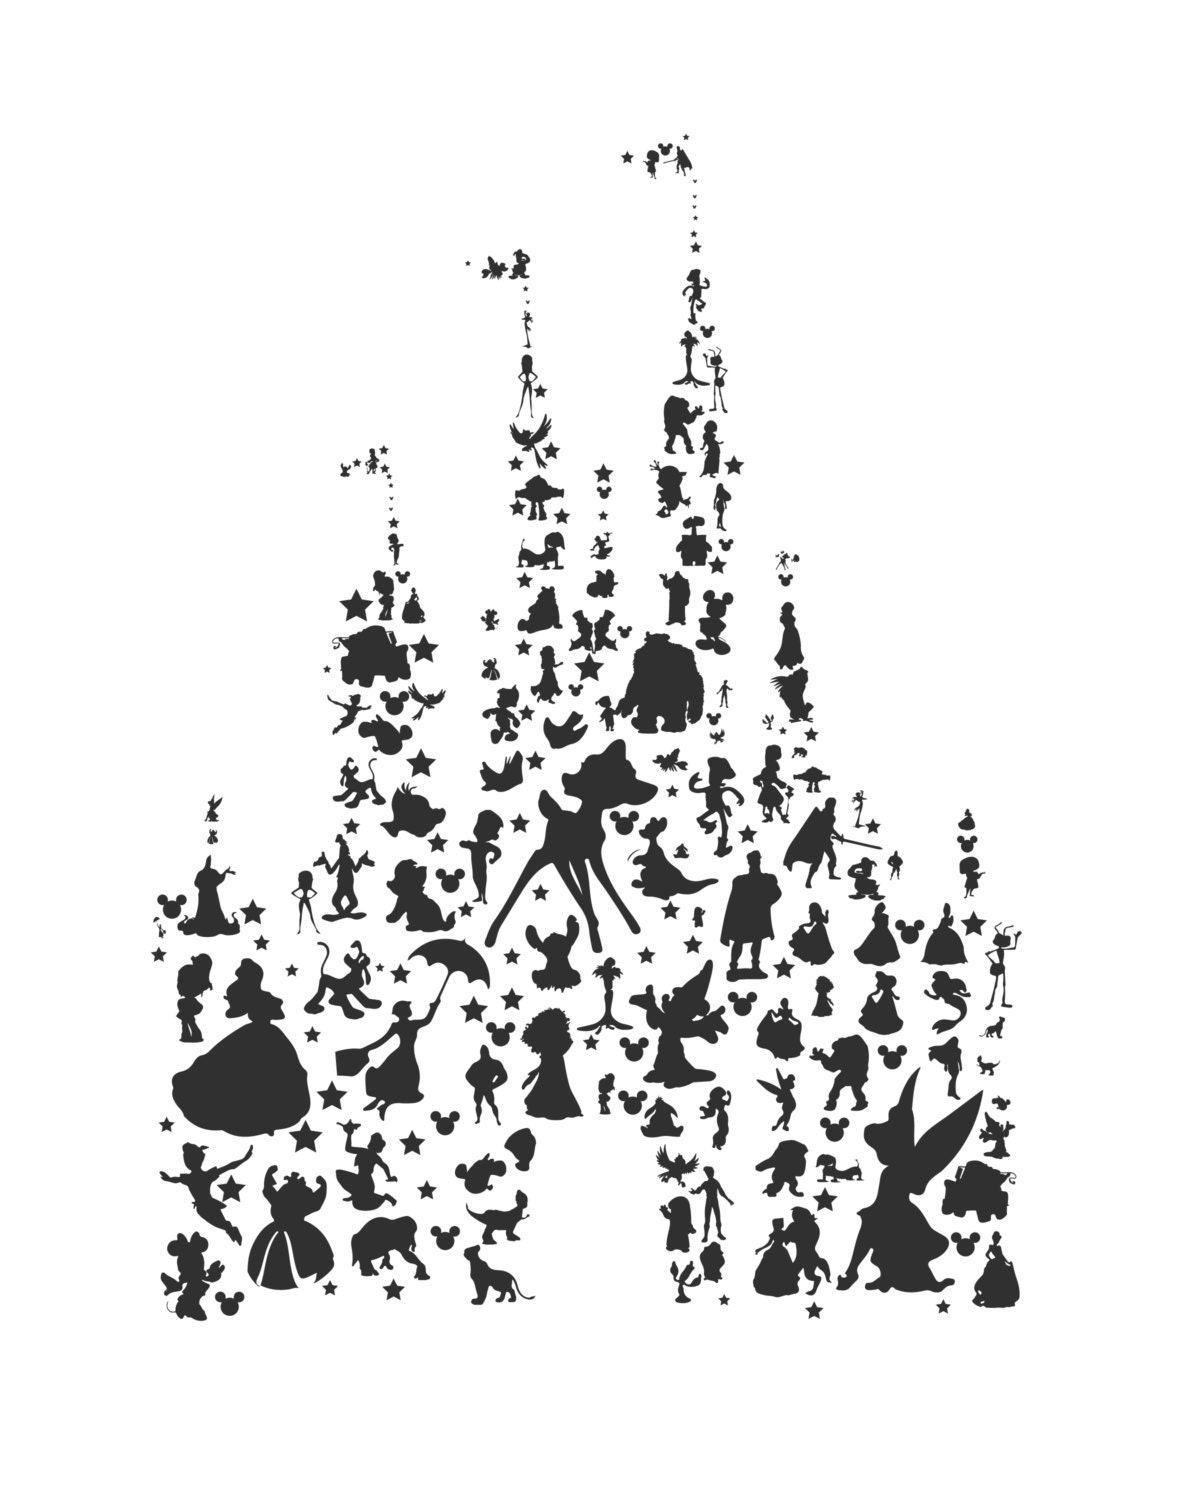 It's just an image of Astounding Disney Character Silhouettes